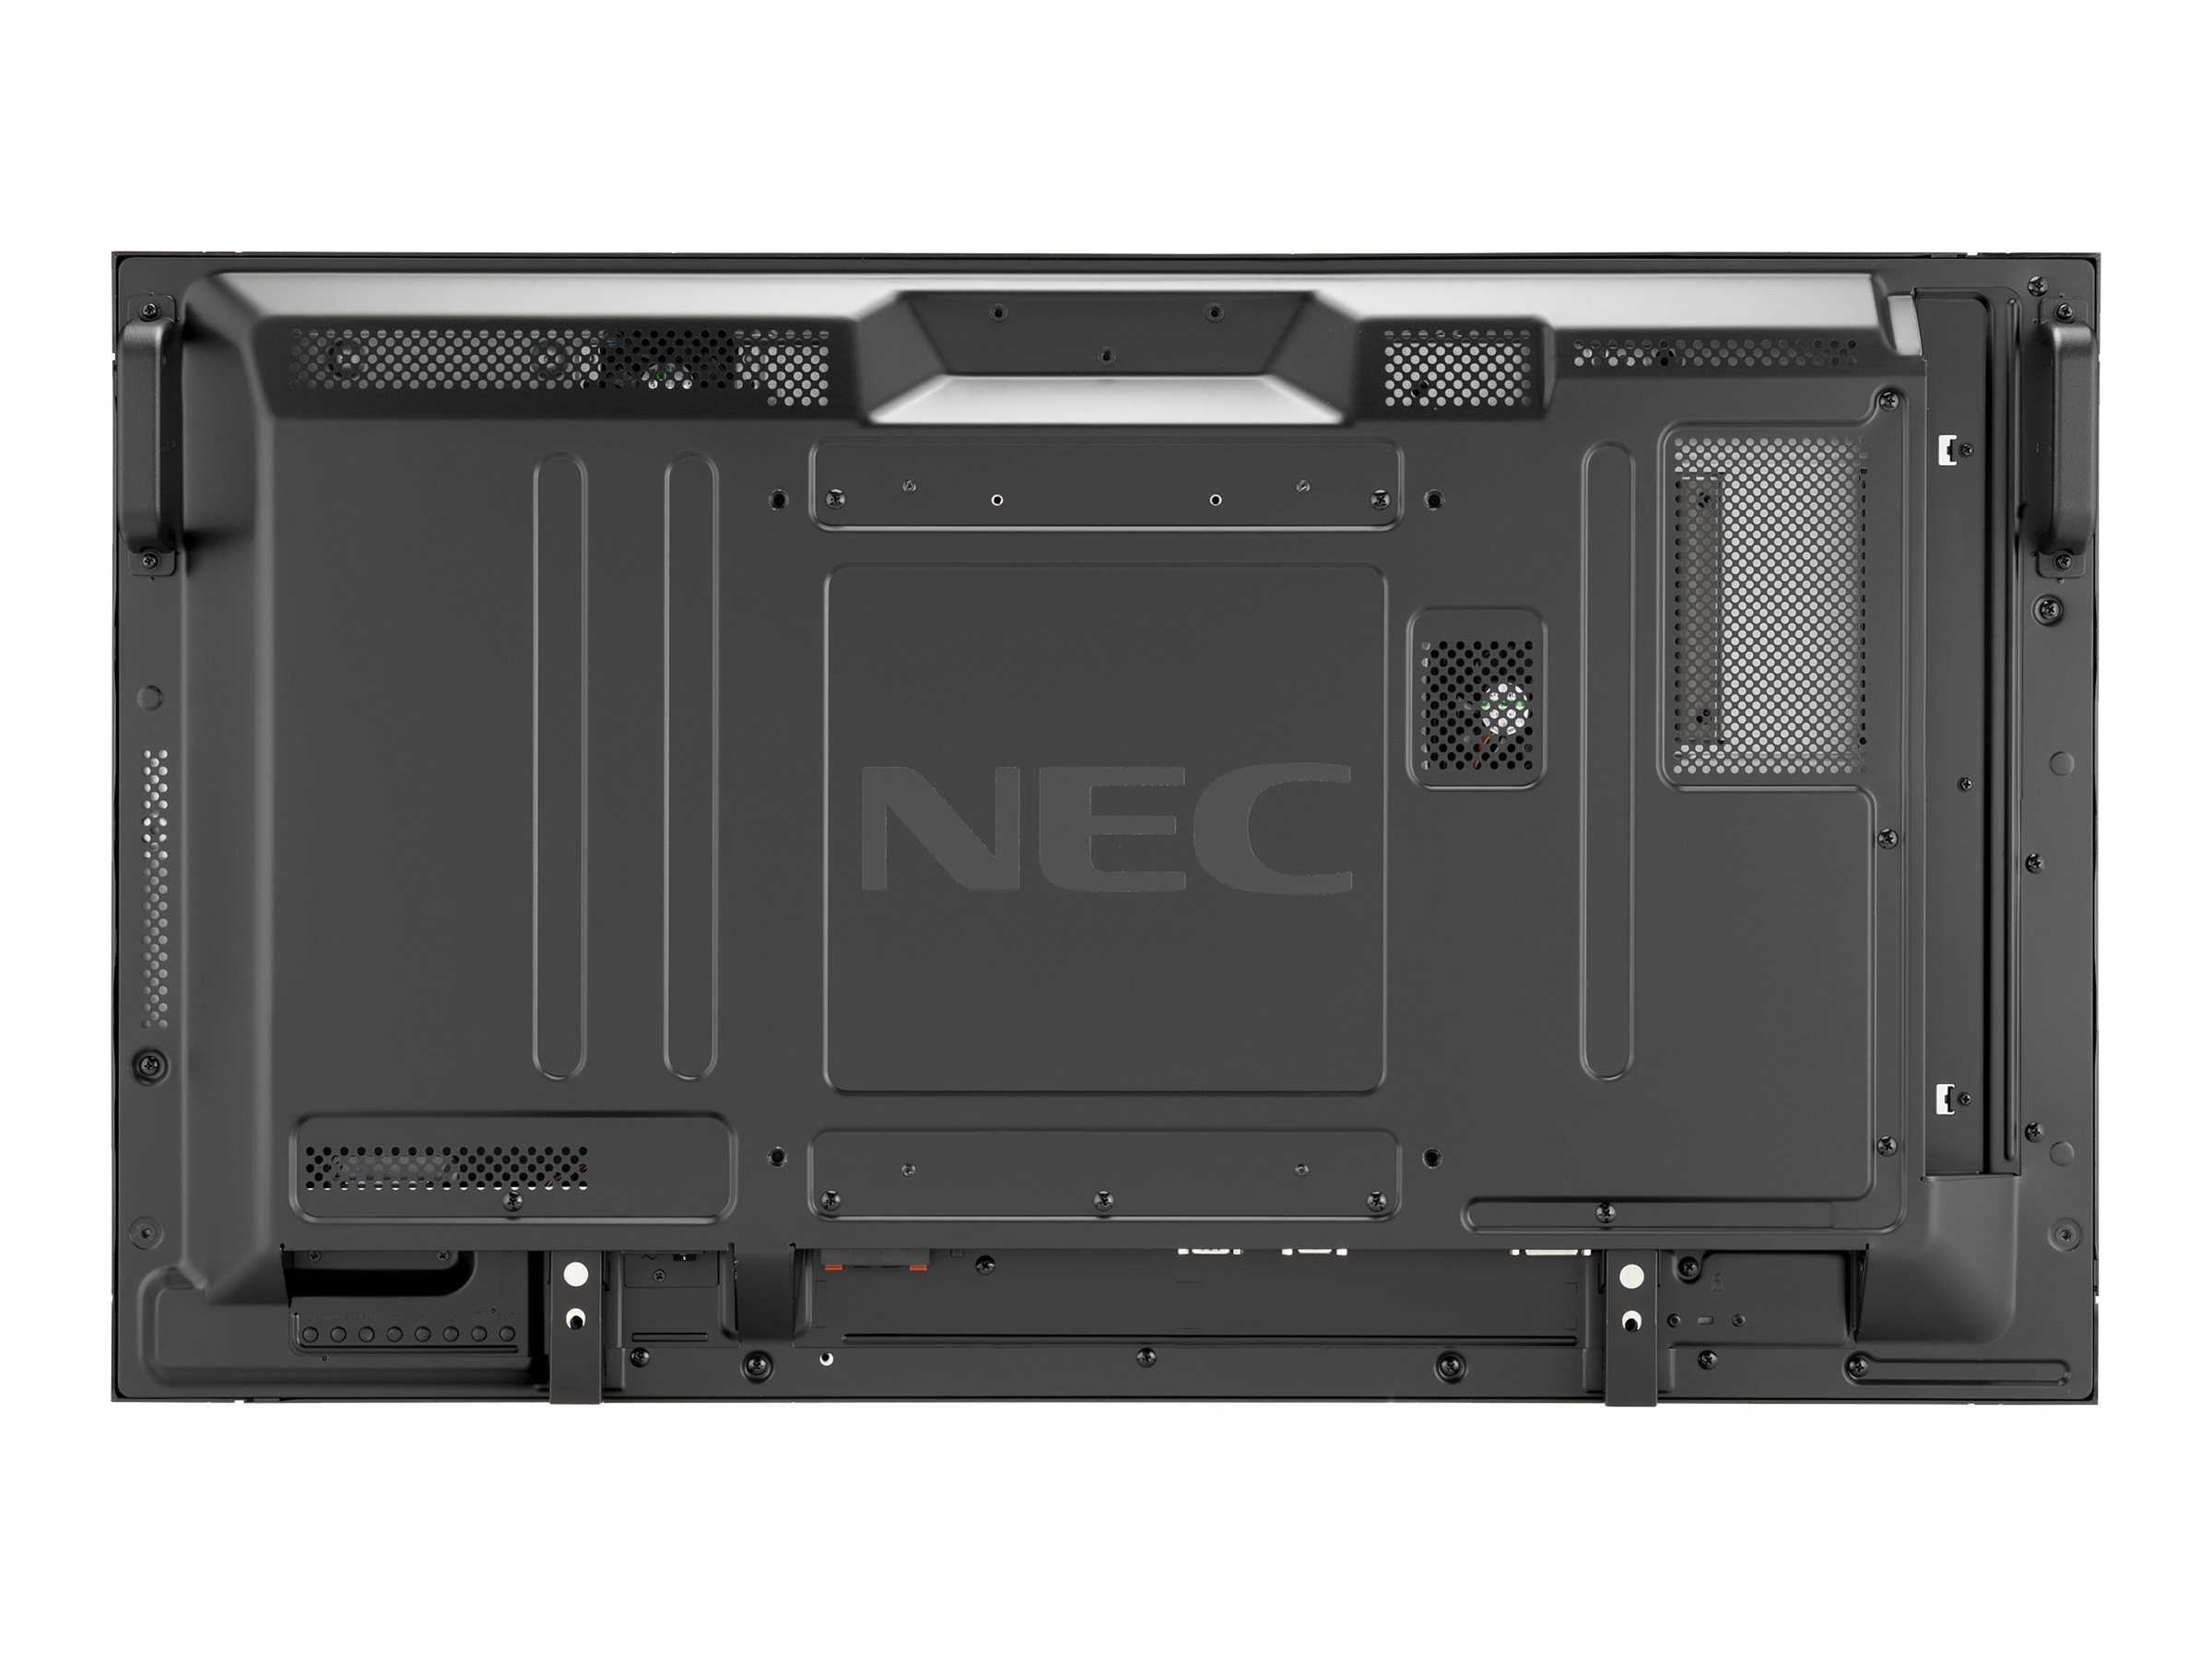 NEC 46 P463 Full HD LED-LCD Display with Integrated Computer, Black, P463-PC2